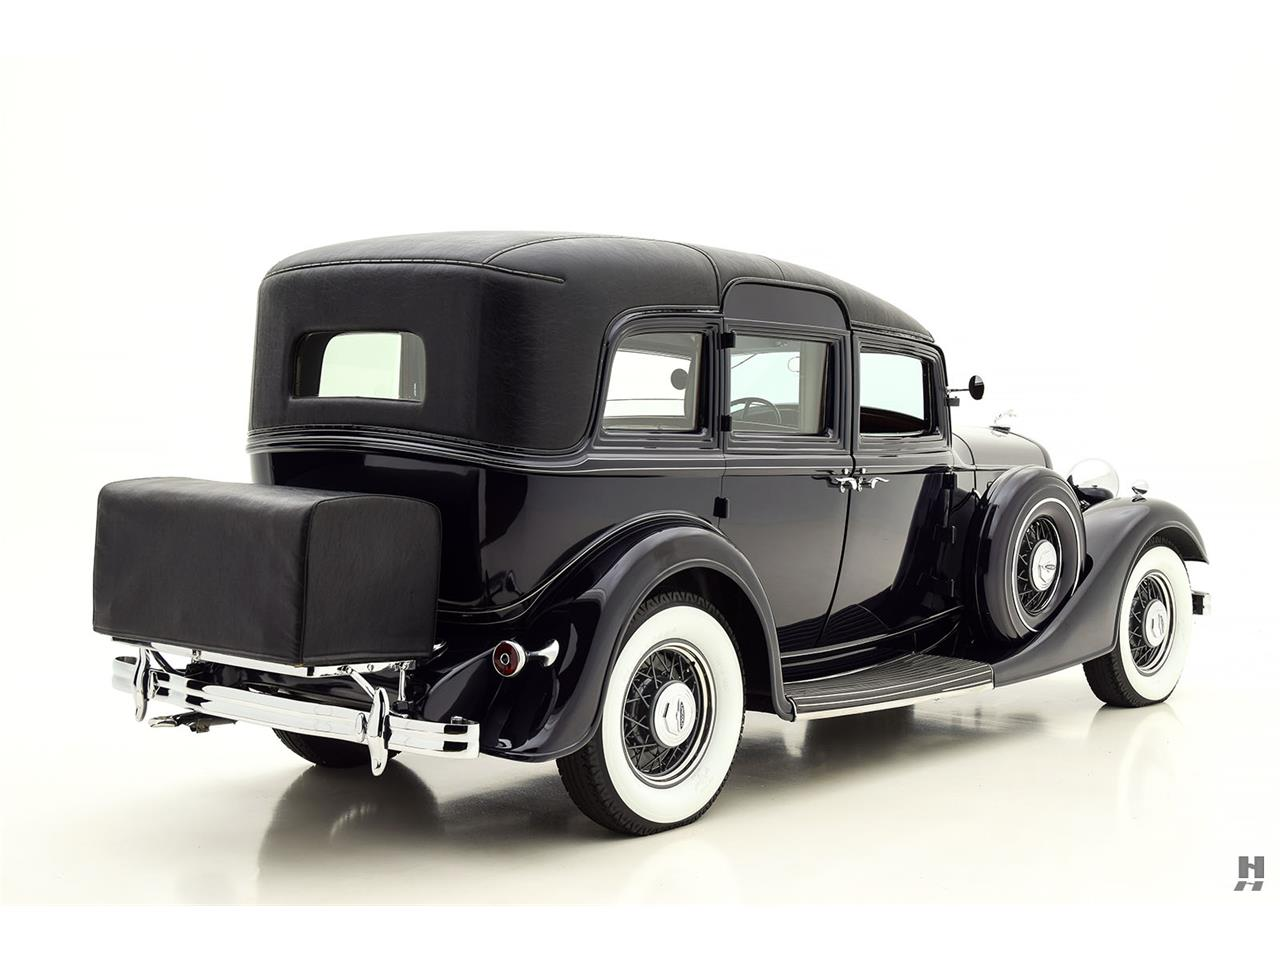 Large Picture of 1934 Lincoln Antique located in Saint Louis Missouri - $129,500.00 - LBT2